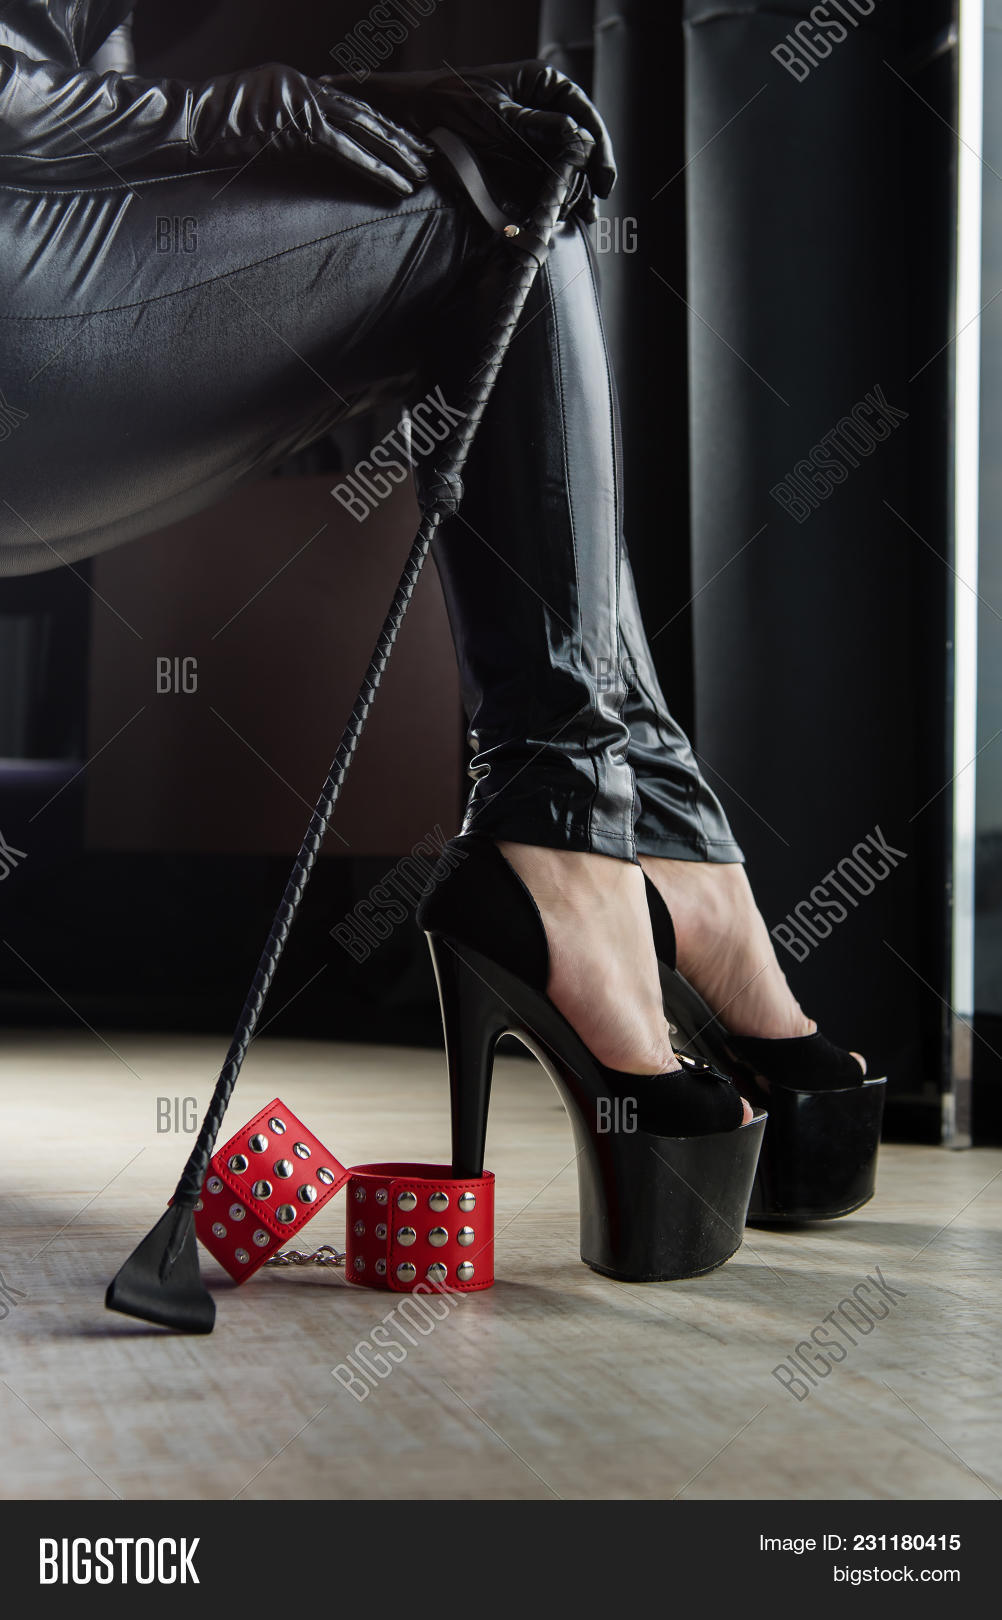 Sexy Shoes And Other Toys For Love Bdsm Games. High Heel, Leather Whip And